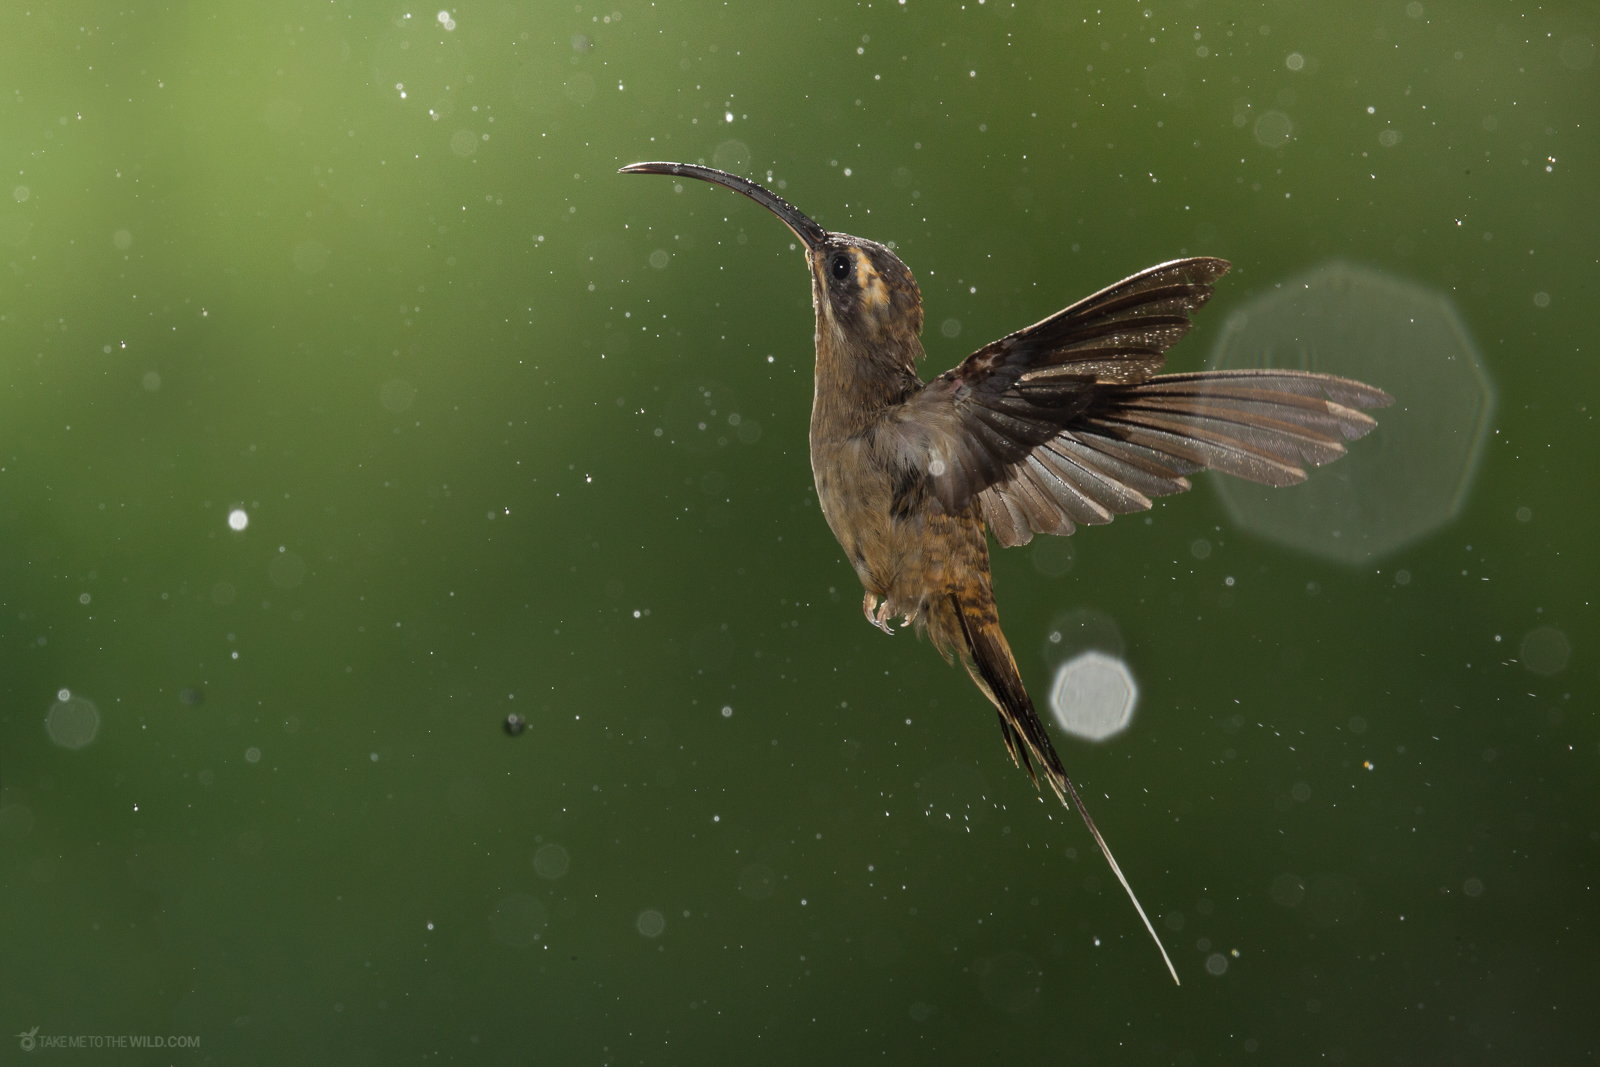 Long-billed Hermit (Phaethornis longirostris) in flight under the rain at the low lands of Costa Rica.